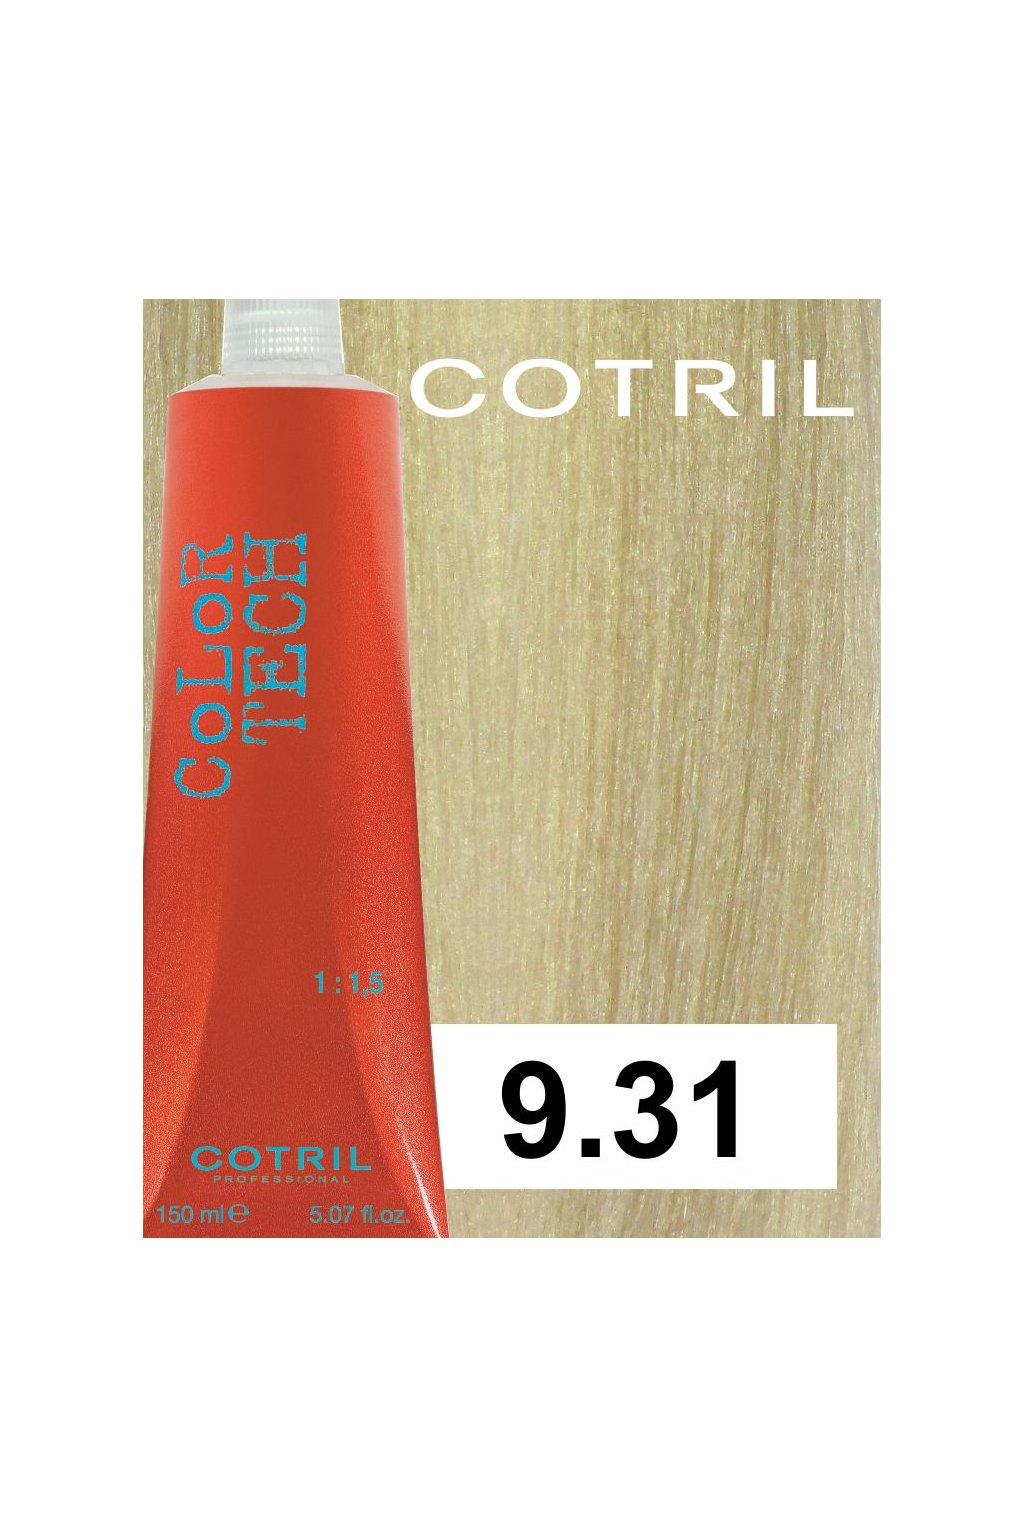 9 31 ct cotril